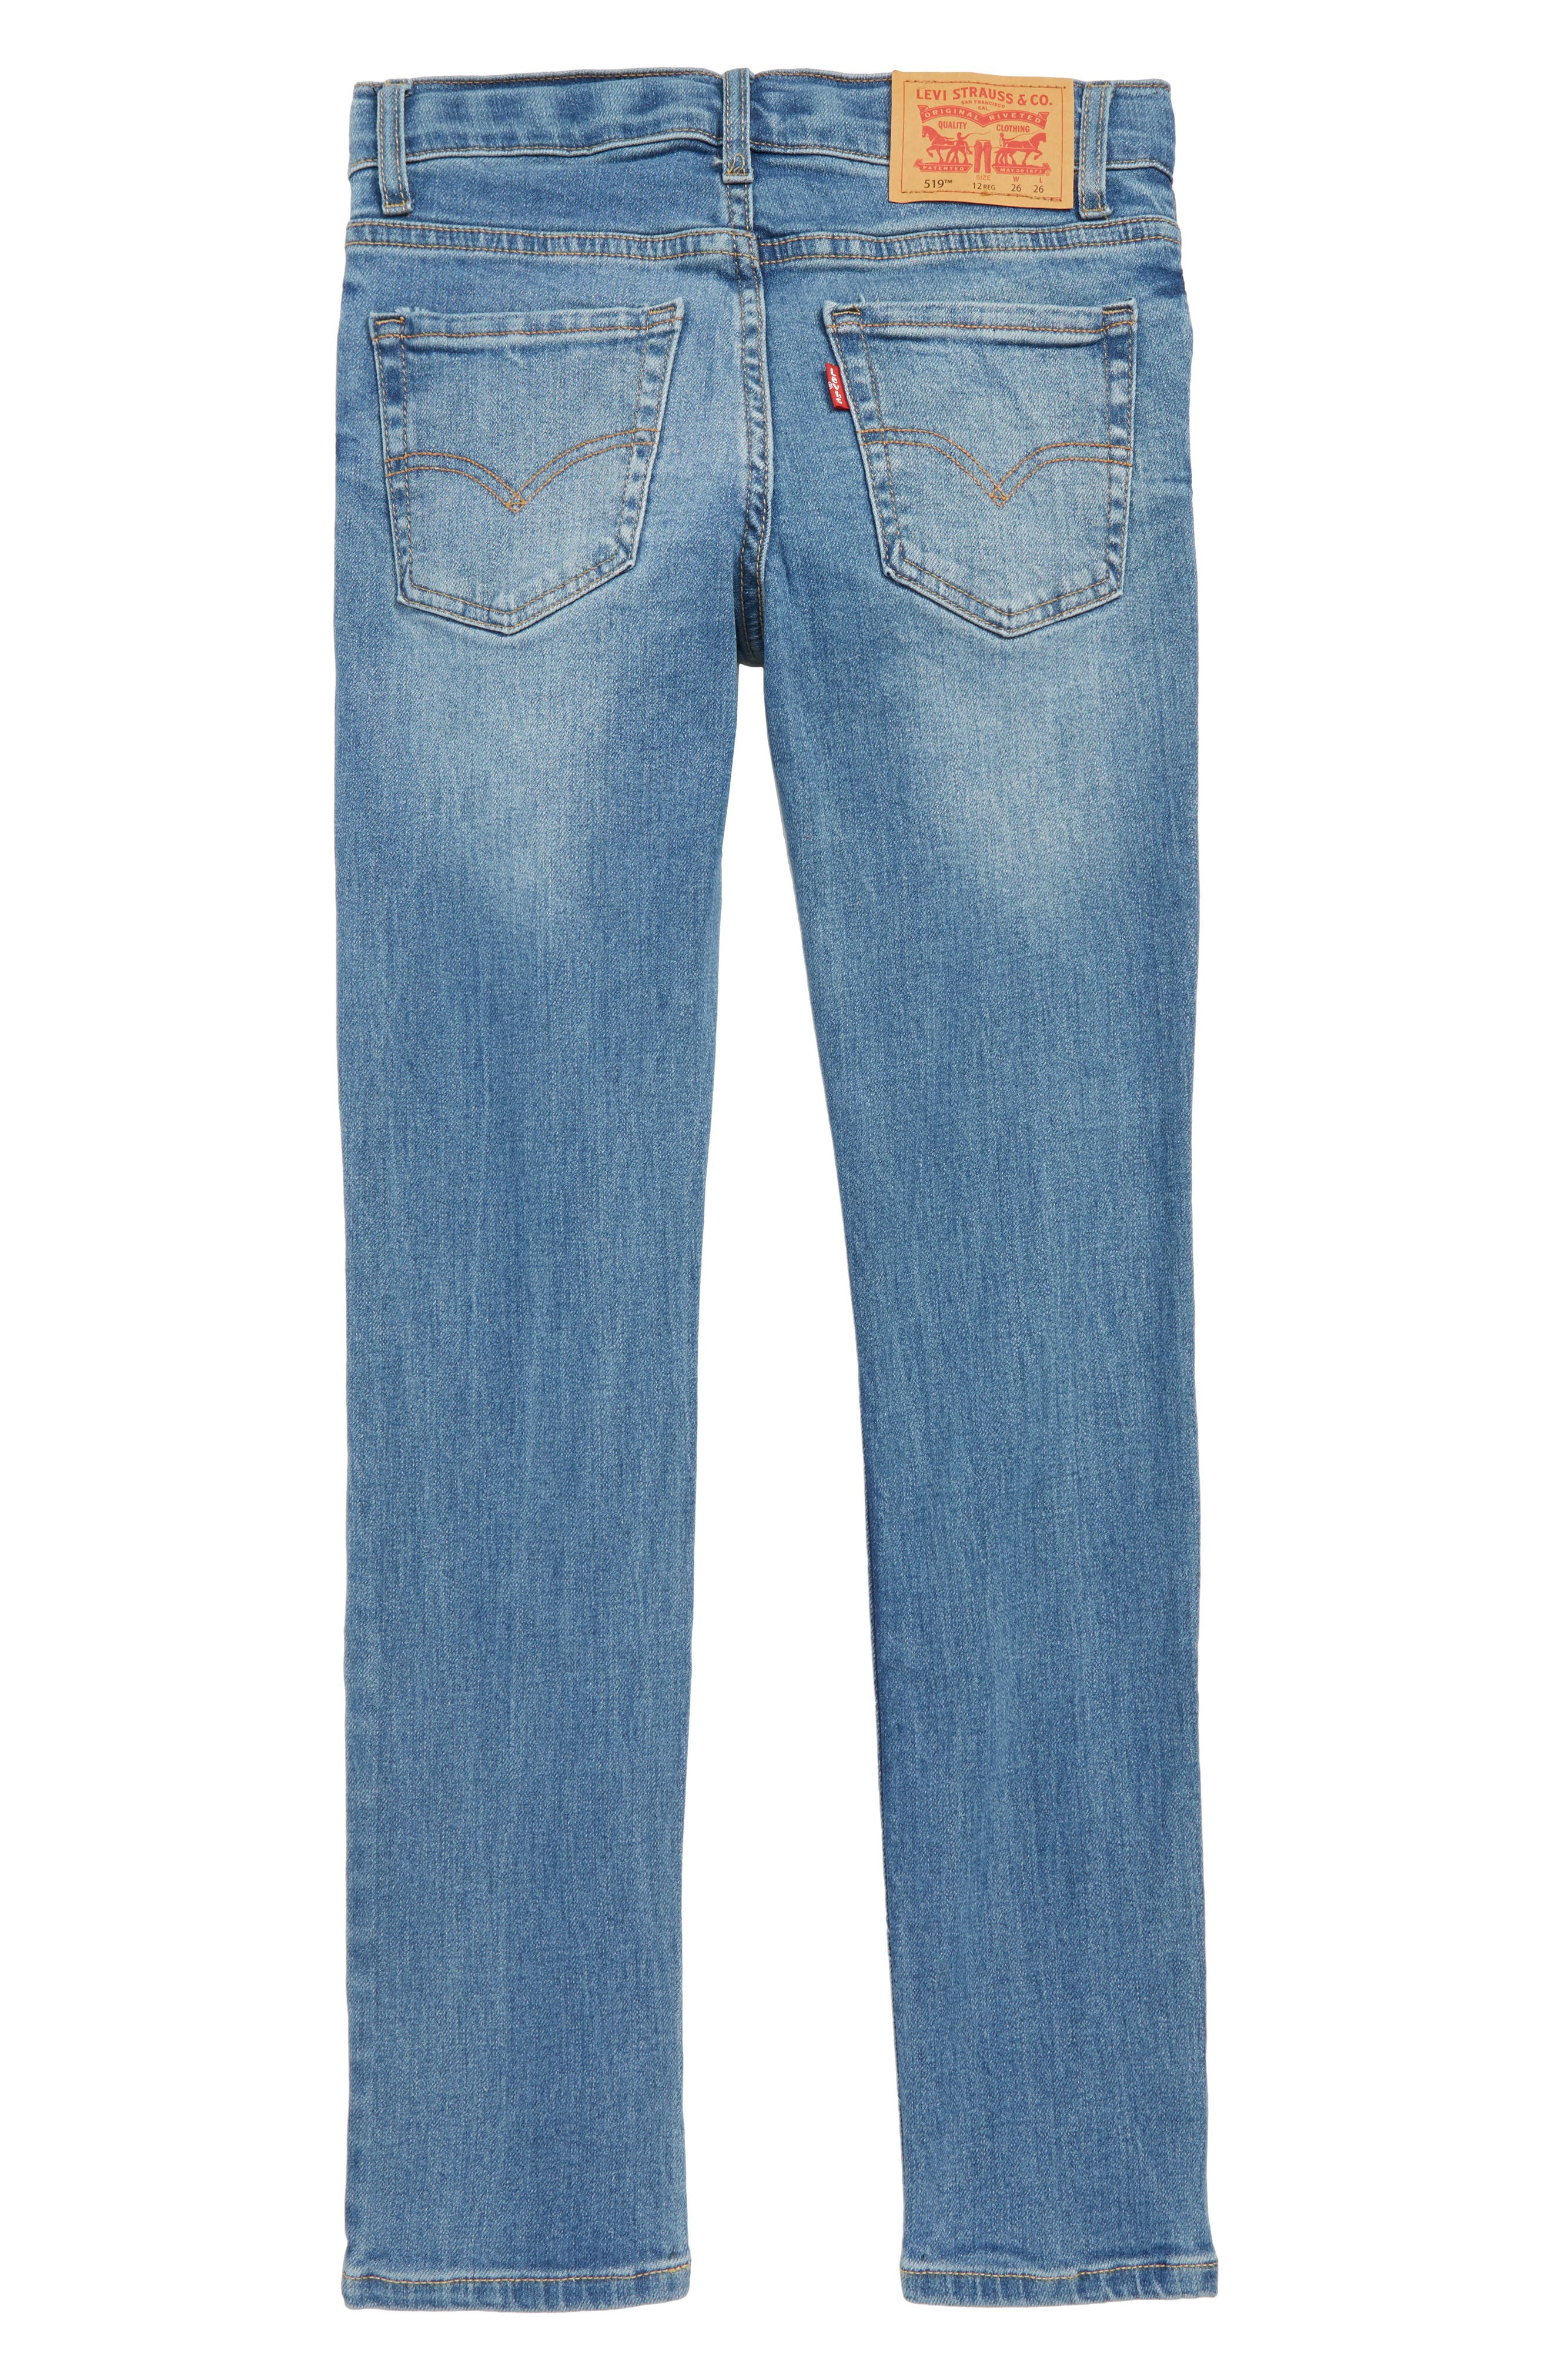 519<sup>™</sup> Extreme Skinny Fit Jeans,                             Alternate thumbnail 2, color,                             PALISADES